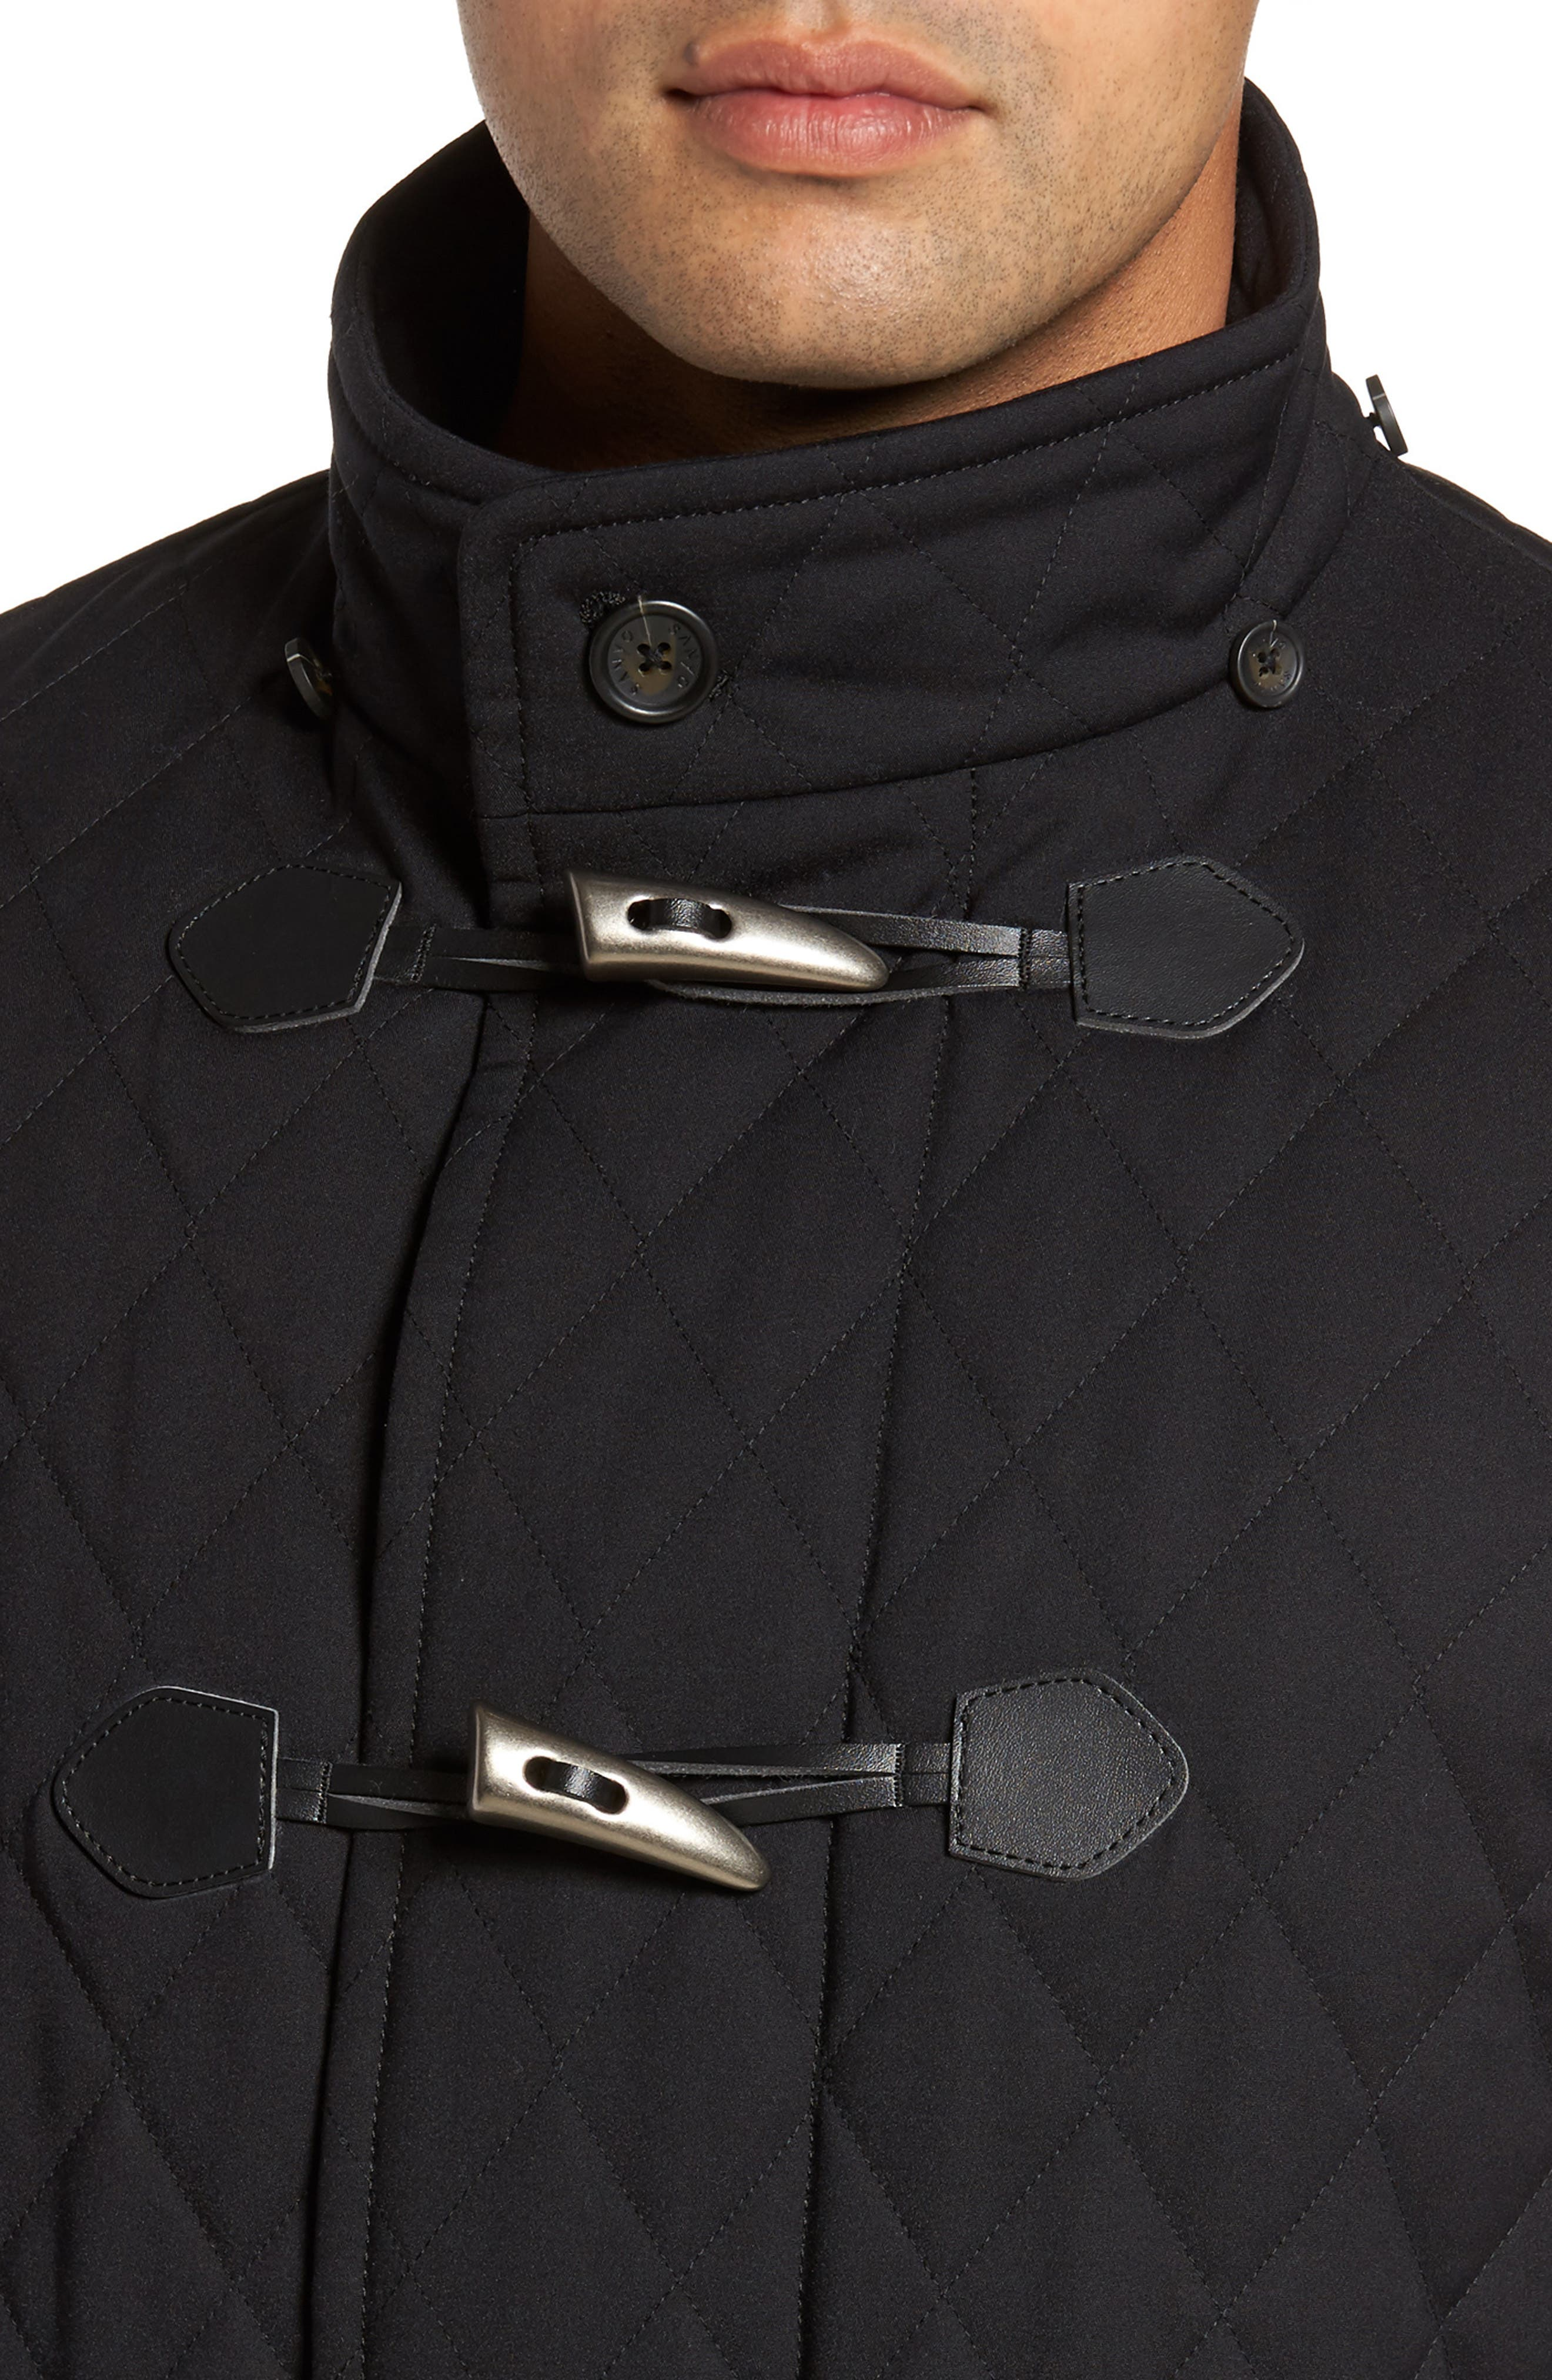 Francisco Quilted Duffle Coat,                             Alternate thumbnail 4, color,                             009